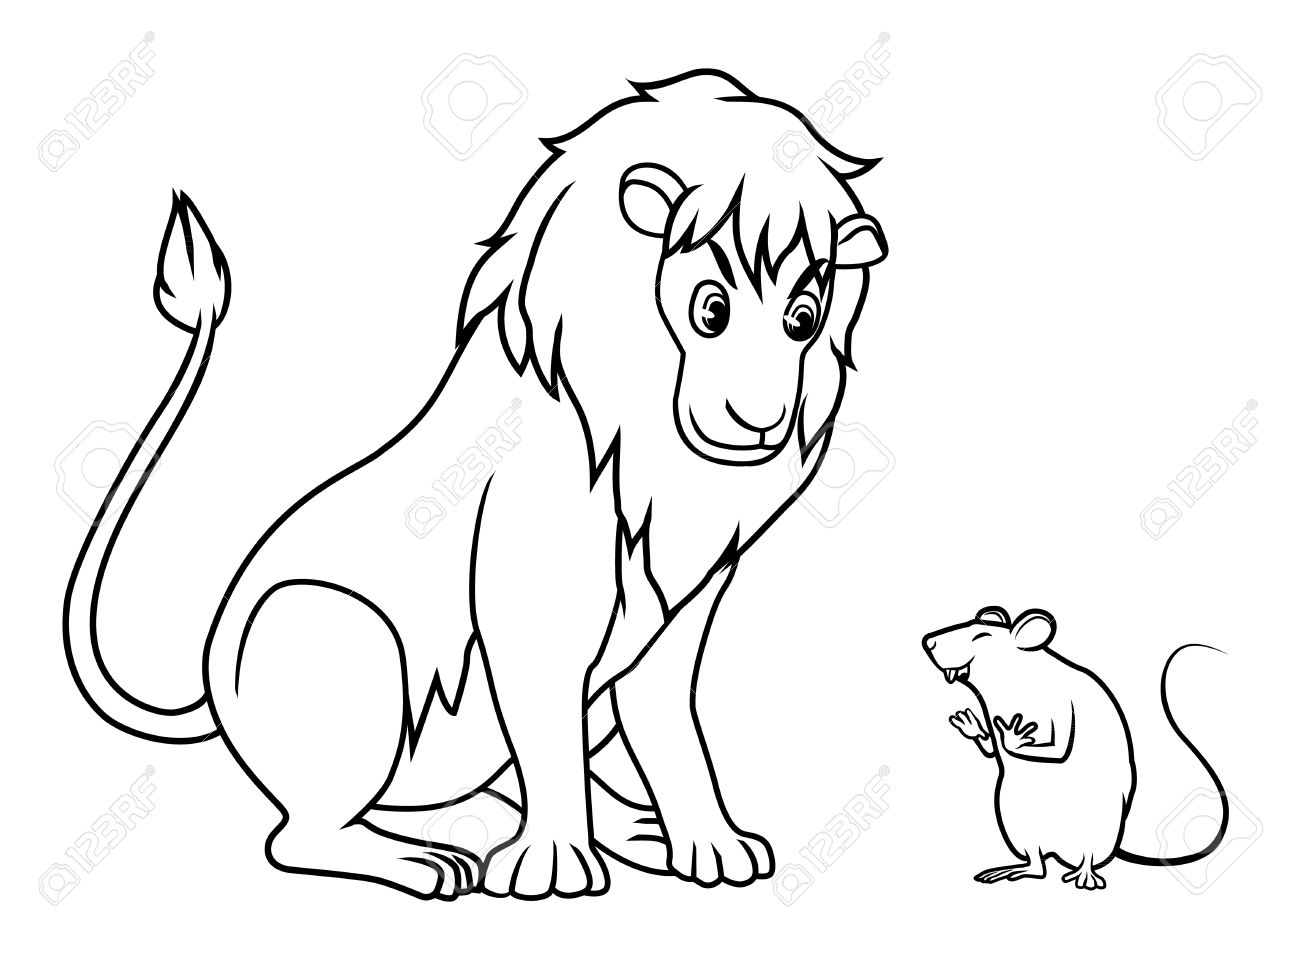 Uncategorized How To Draw A Cartoon Rat lion and rat drawing cartoon vector royalty free cliparts vectors stock 54417143